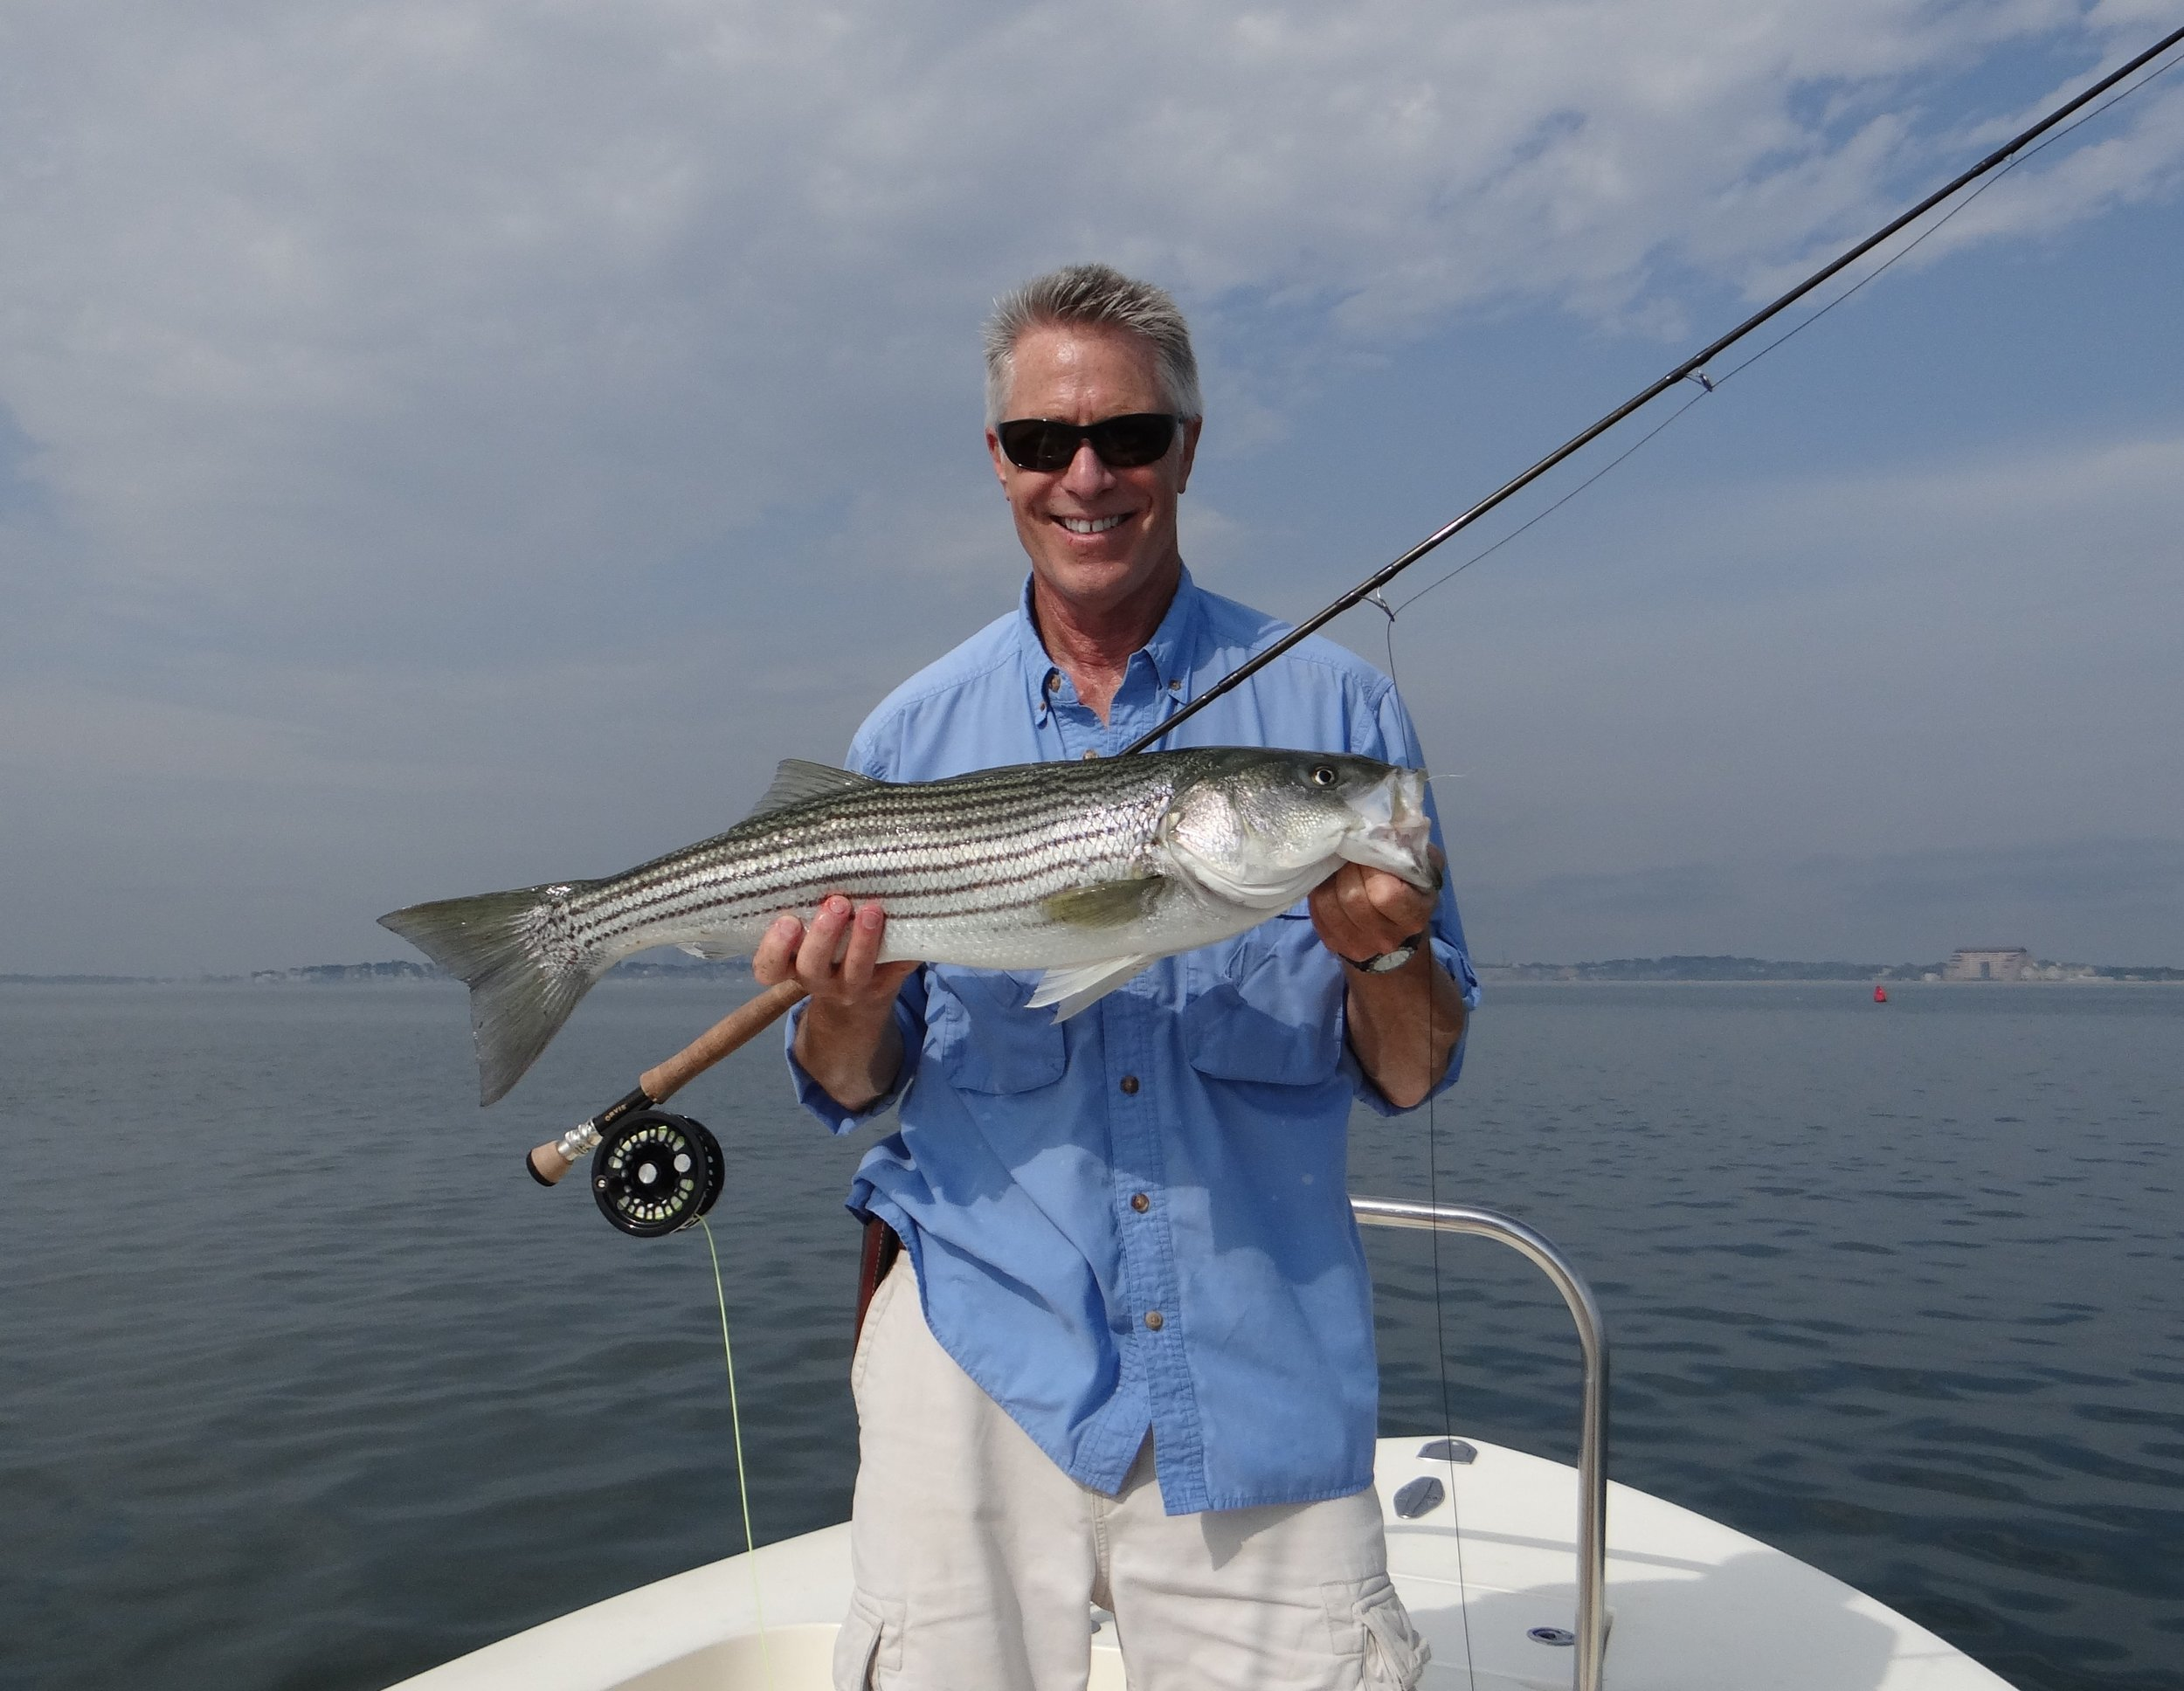 Captain's Report - A little bit about me: I began fishing on the streams, ponds, and lakes in my hometown of Sharon, MA when I was just a kid.I have been fishing in salt waters for over 30 year and I have been guiding fly and light tackle anglers on Boston Harbor going on 20 years. It has been my great privilege to guide and get to know anglers from all over the world. Fly fishing is my passion and I love to share it with my customers. When I am not fishing, I am a practicing psychotherapist and musician.